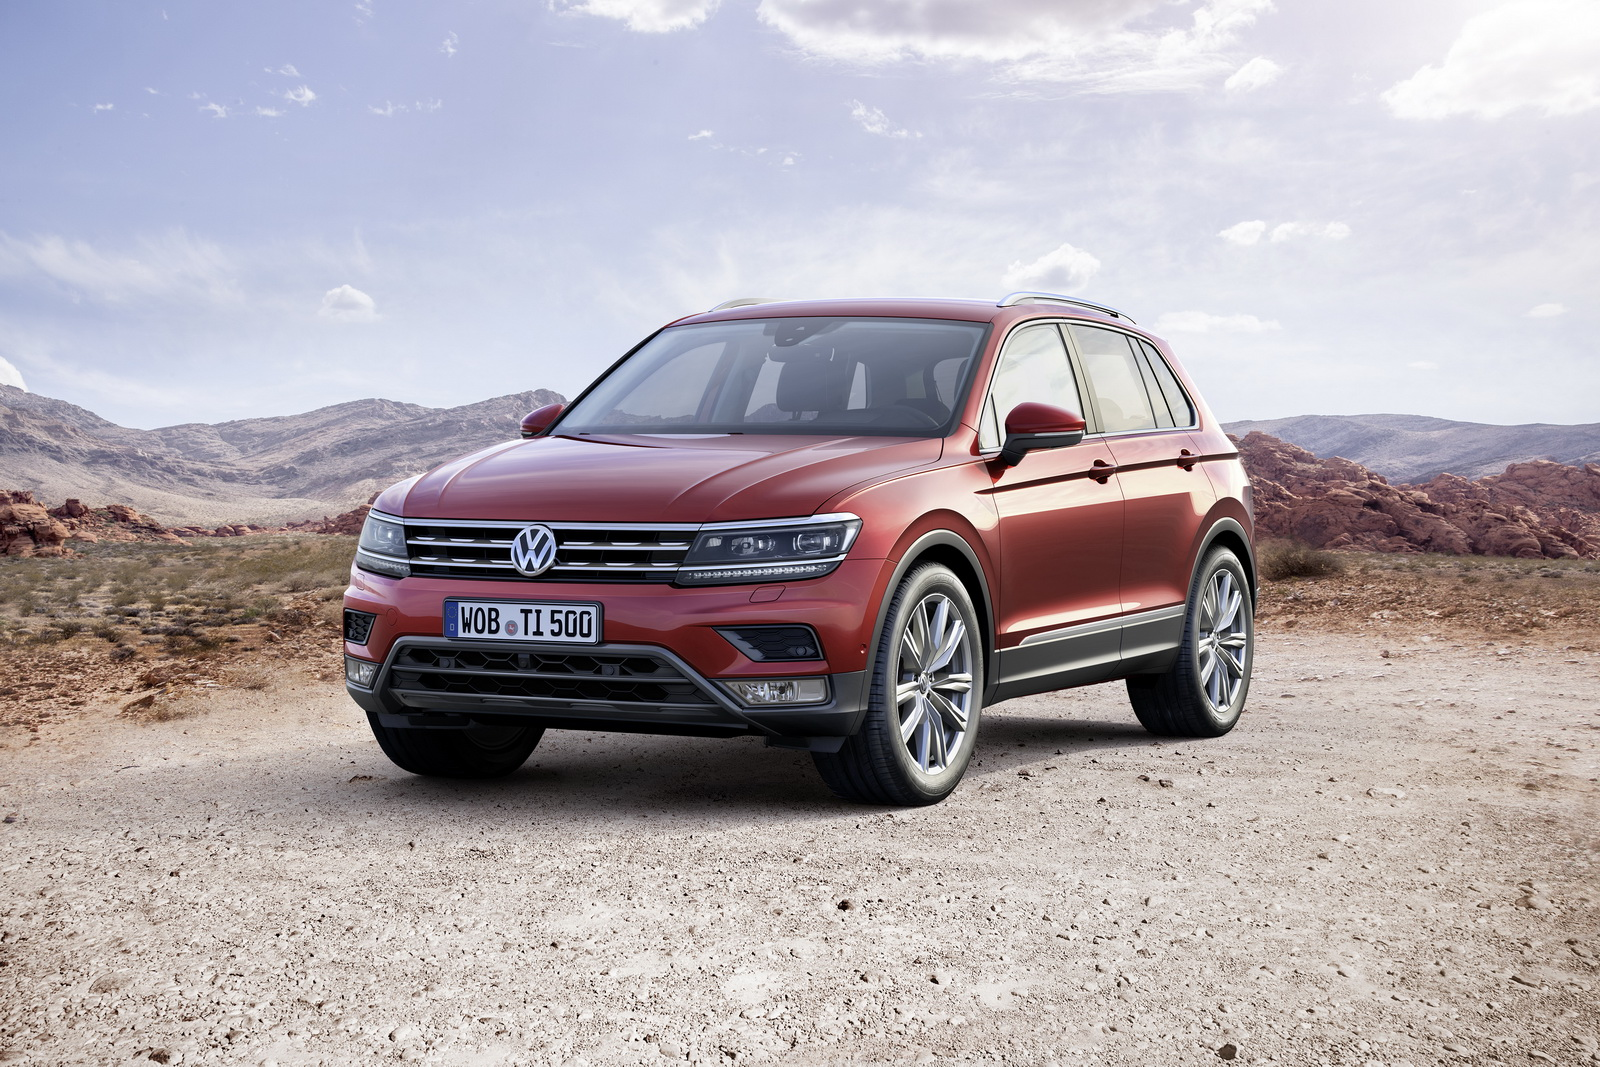 vw opens order books for new tiguan suv w video carscoops. Black Bedroom Furniture Sets. Home Design Ideas